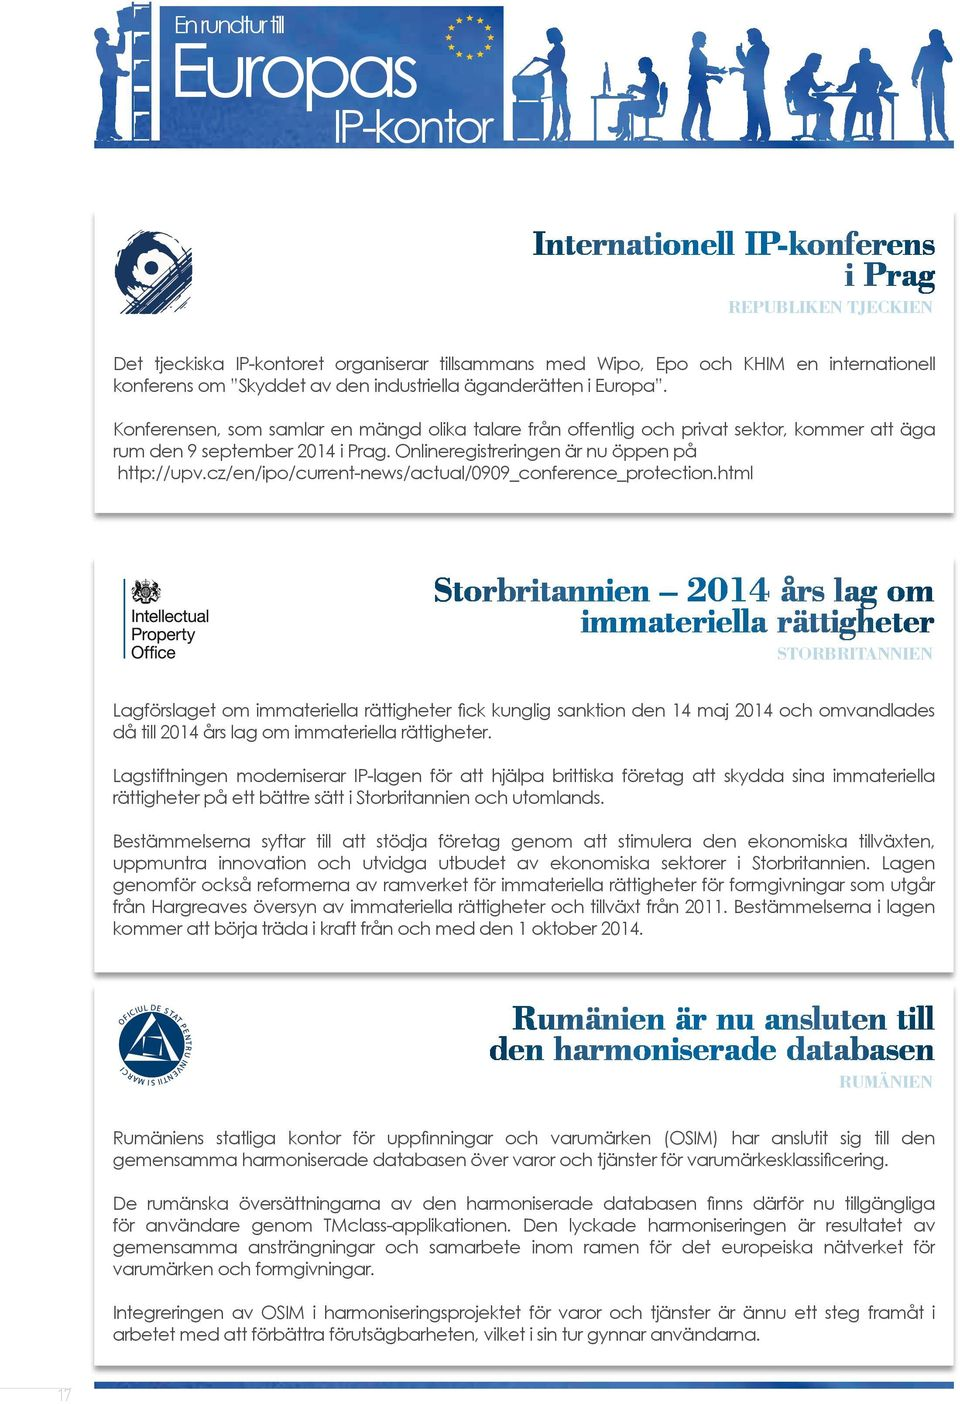 Onlineregistreringen är nu öppen på http://upv.cz/en/ipo/current-news/actual/0909_conference_protection.